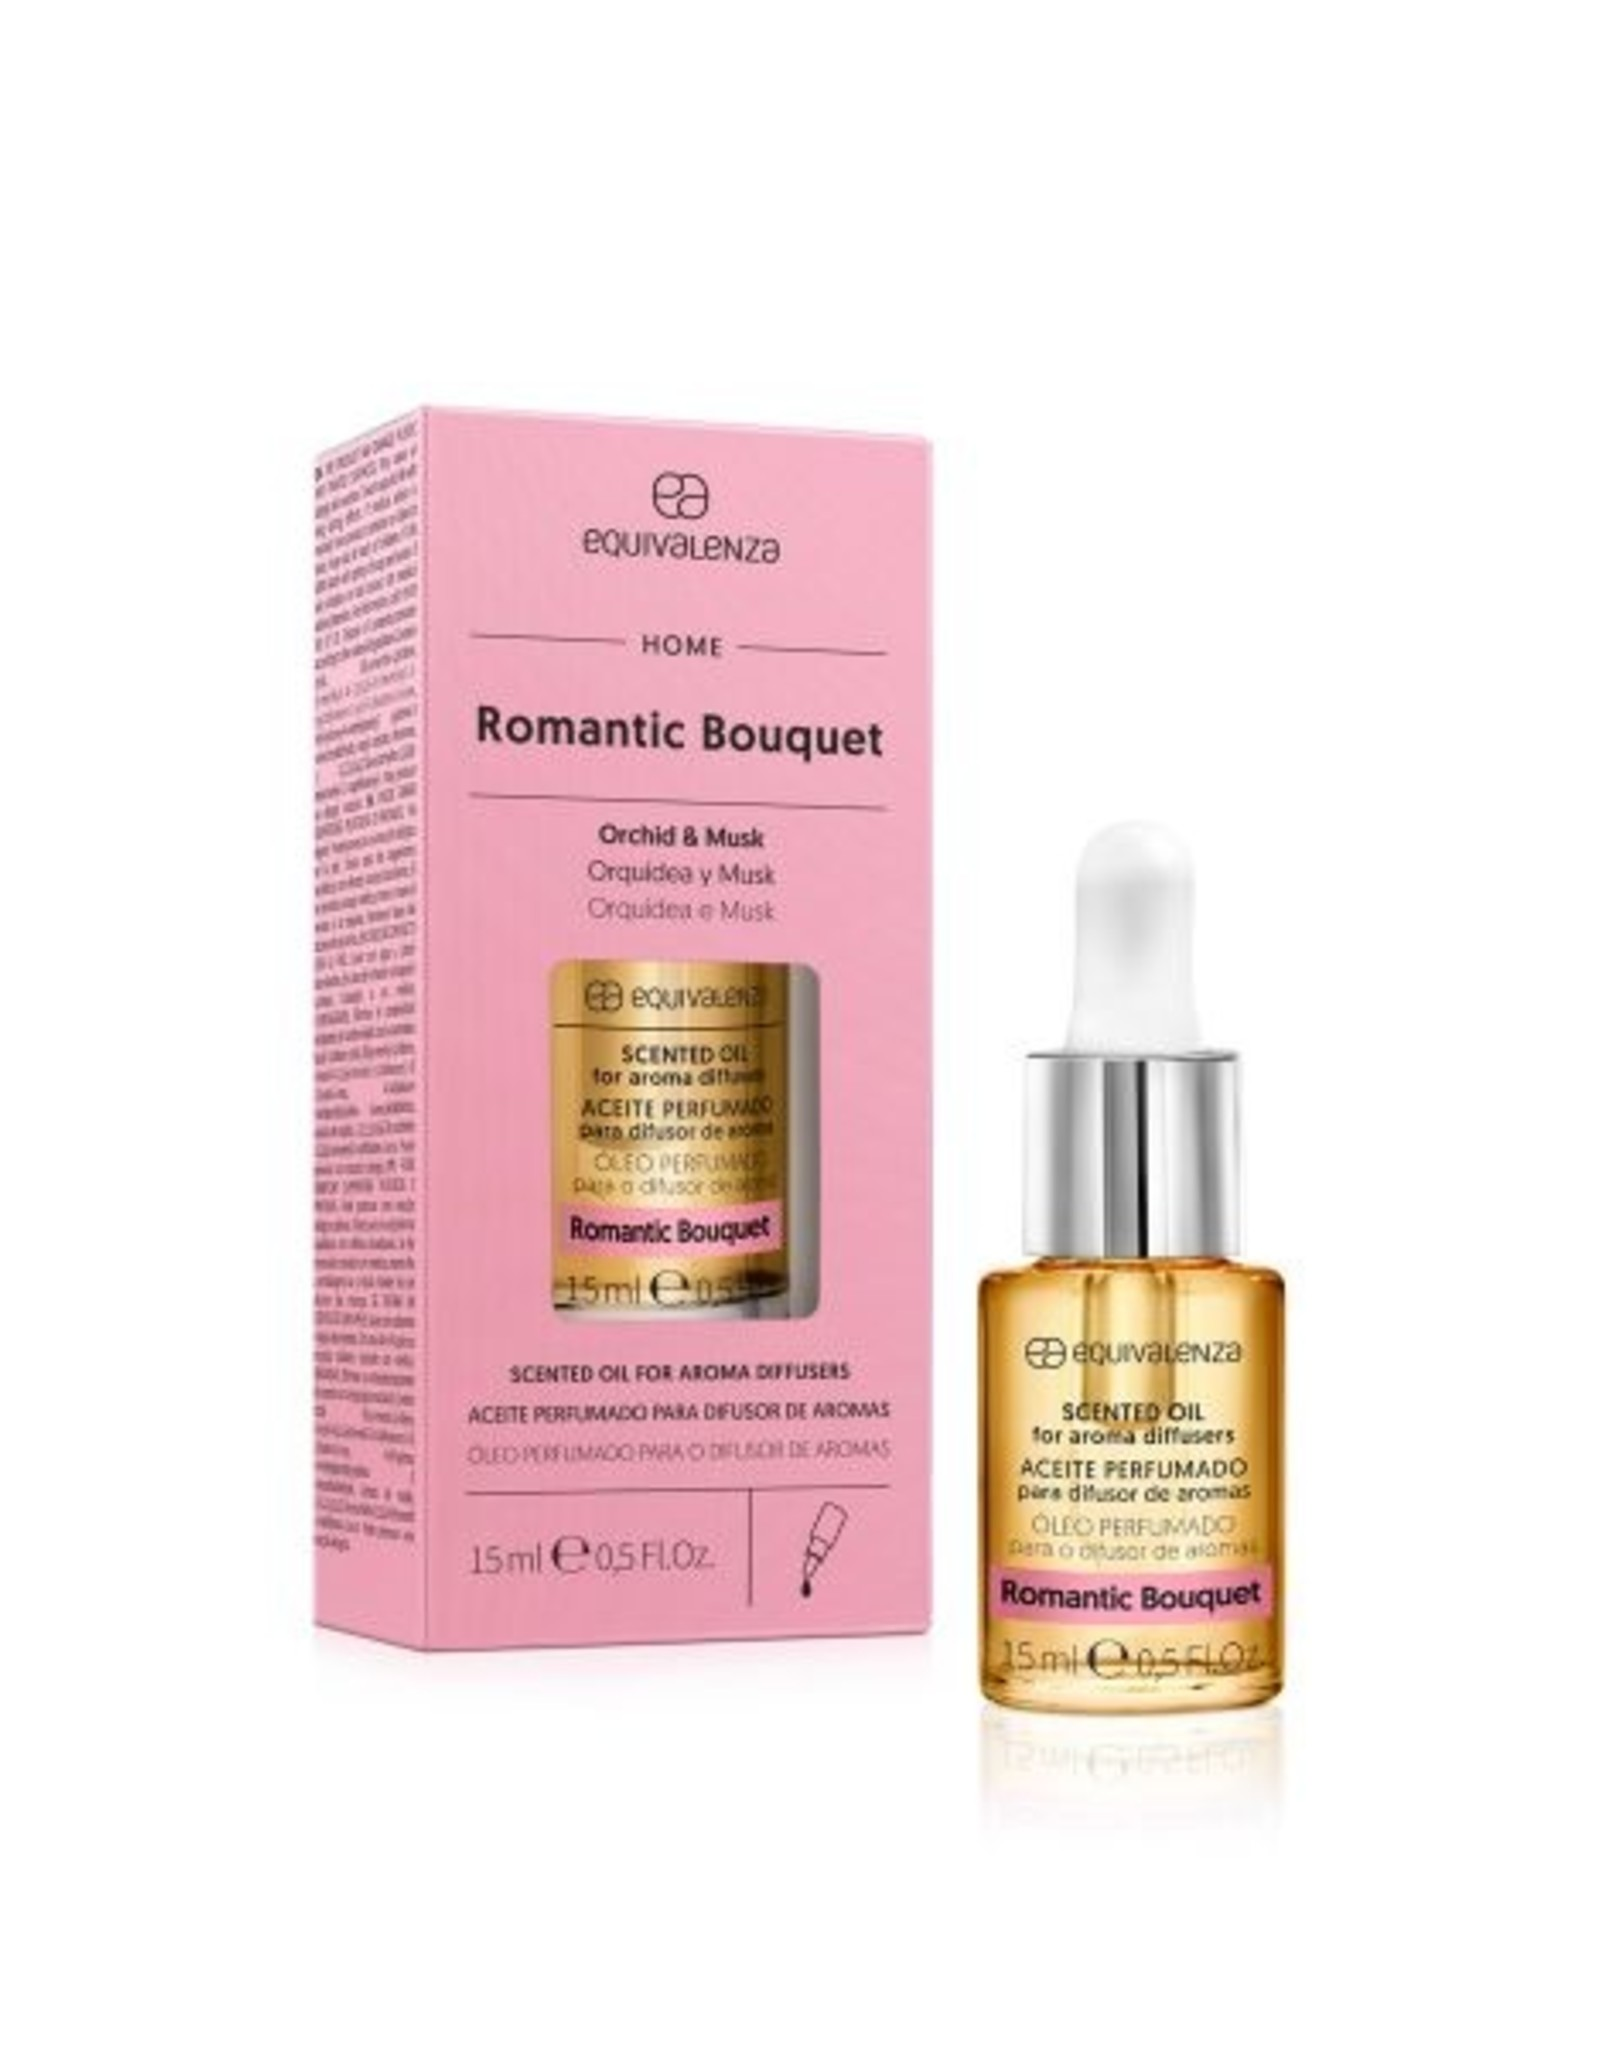 Equivalenza Essential Oil – Romantic Bouquet (orchid and musk)